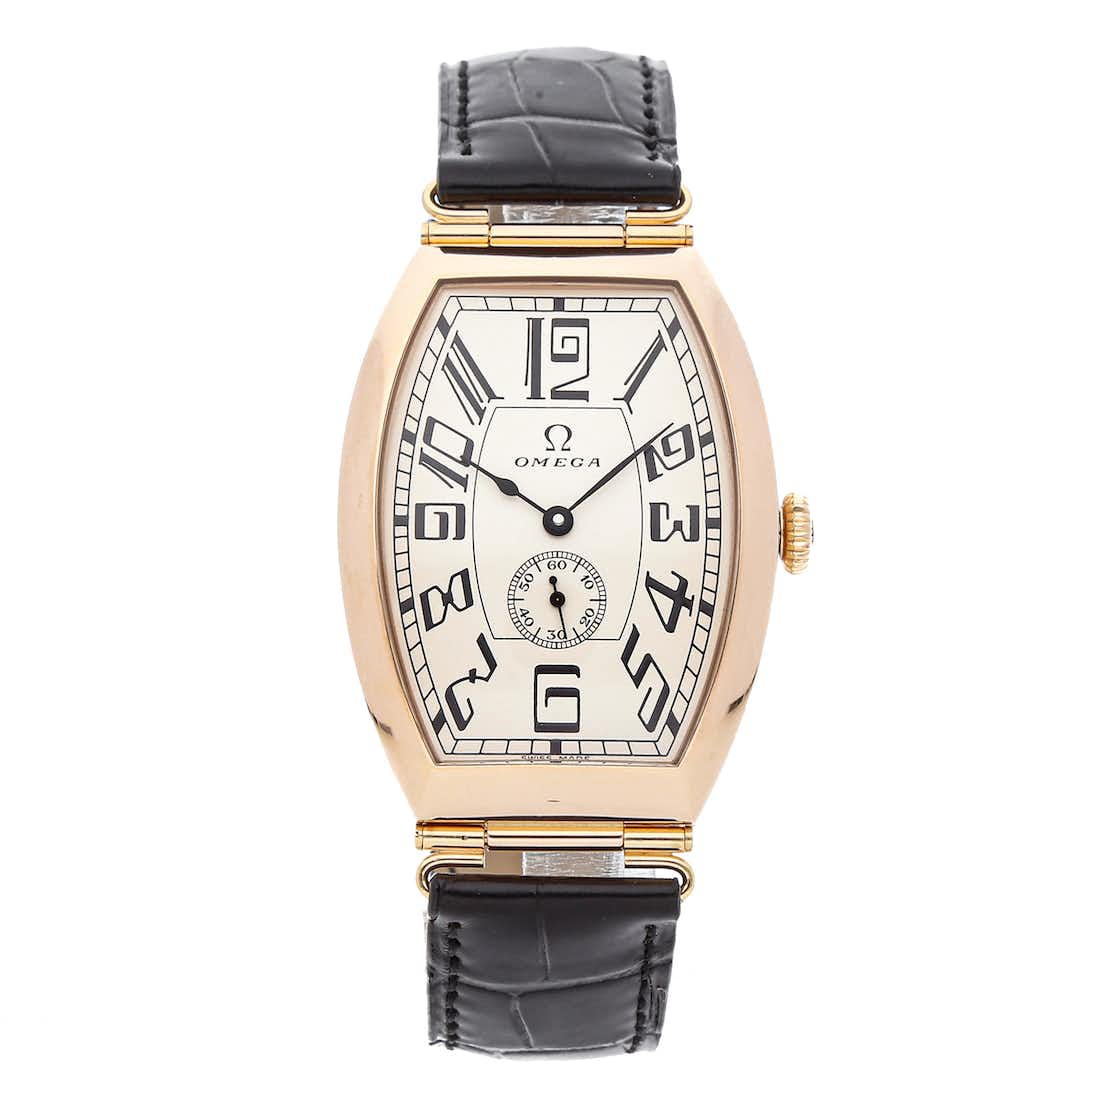 Omega Museum Collection No. 4 Petrograd Limited Edition 5703.30.01